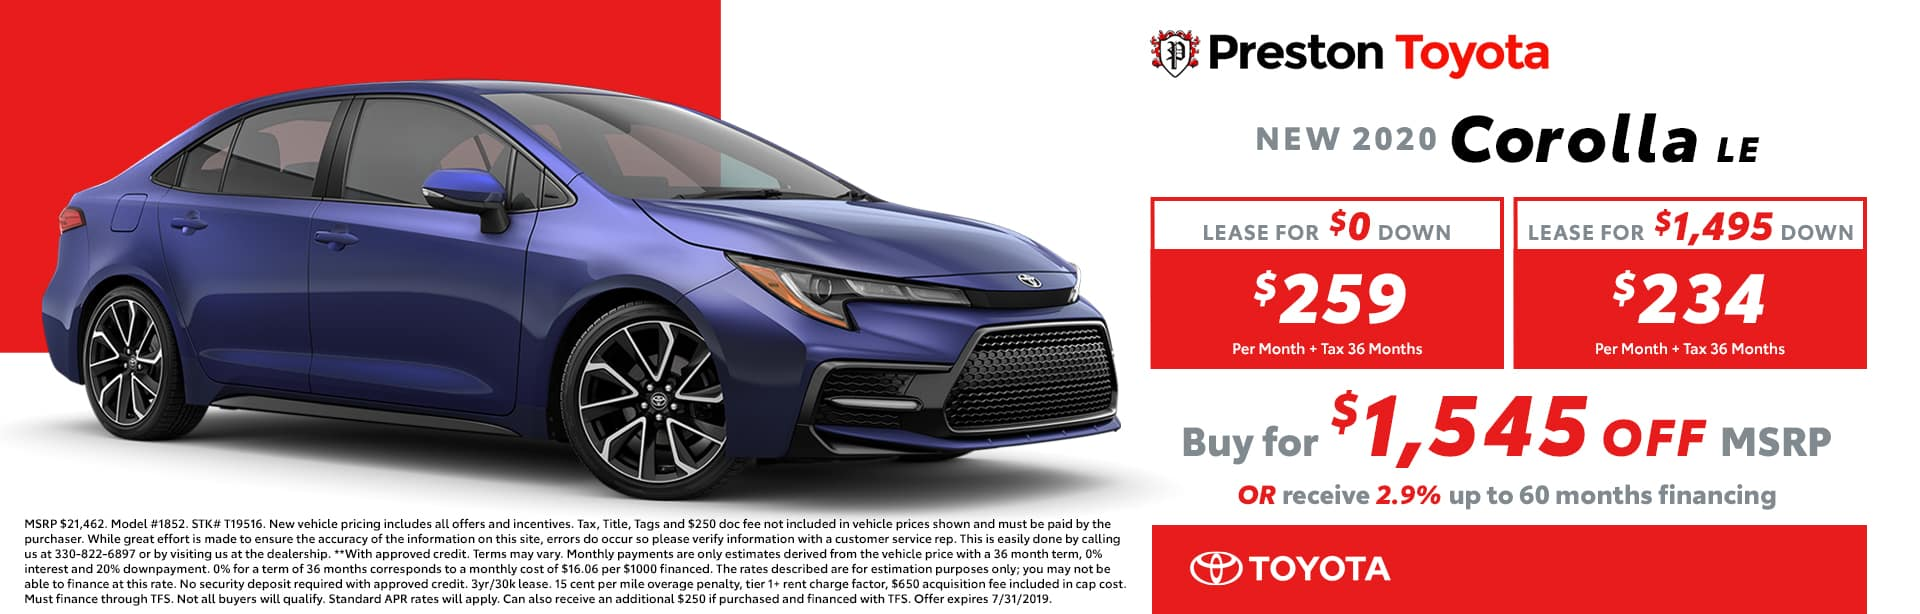 July special on the 2019 Toyota Corolla